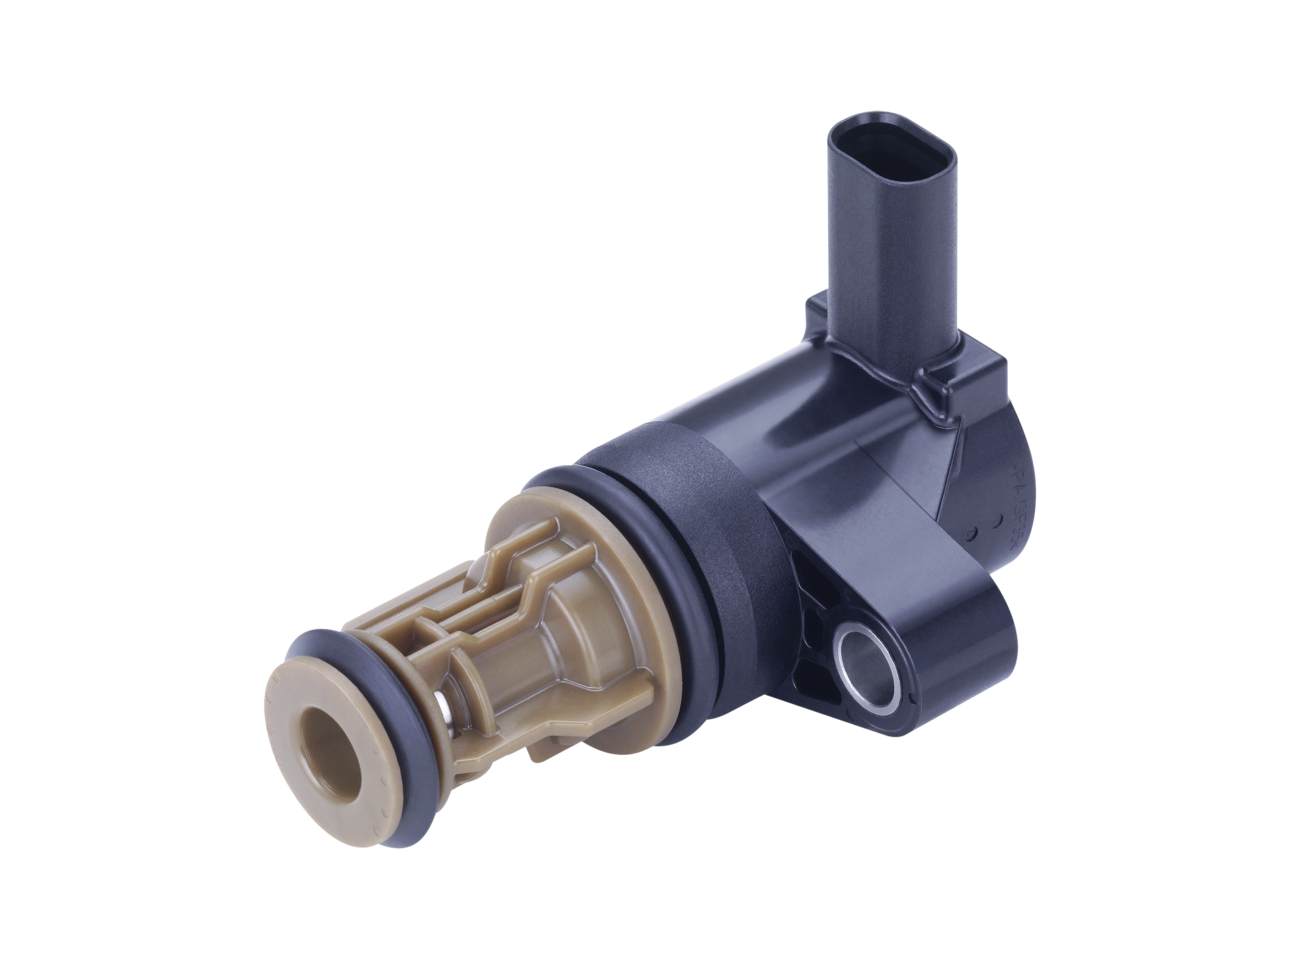 Pierburg Valve for shutting off piston cooling function